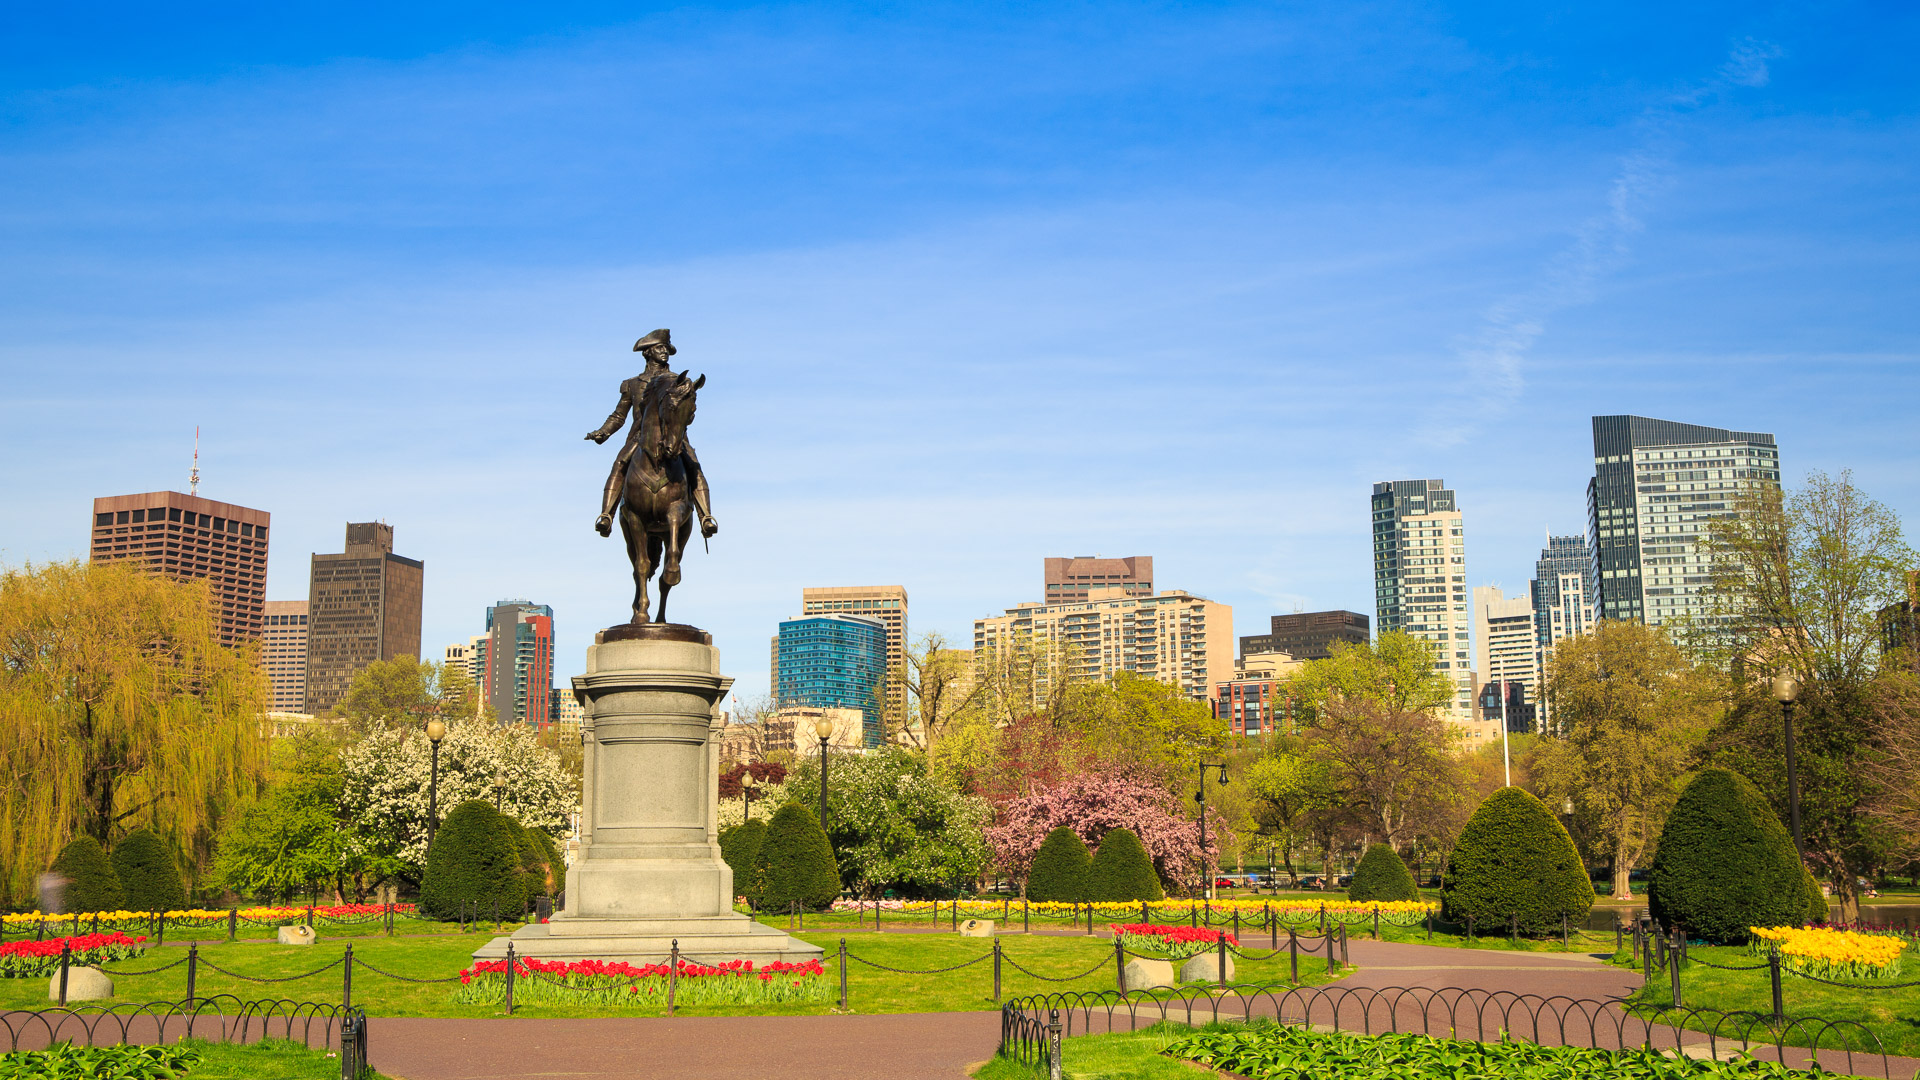 Boston Public Garden and statue of George Washington.